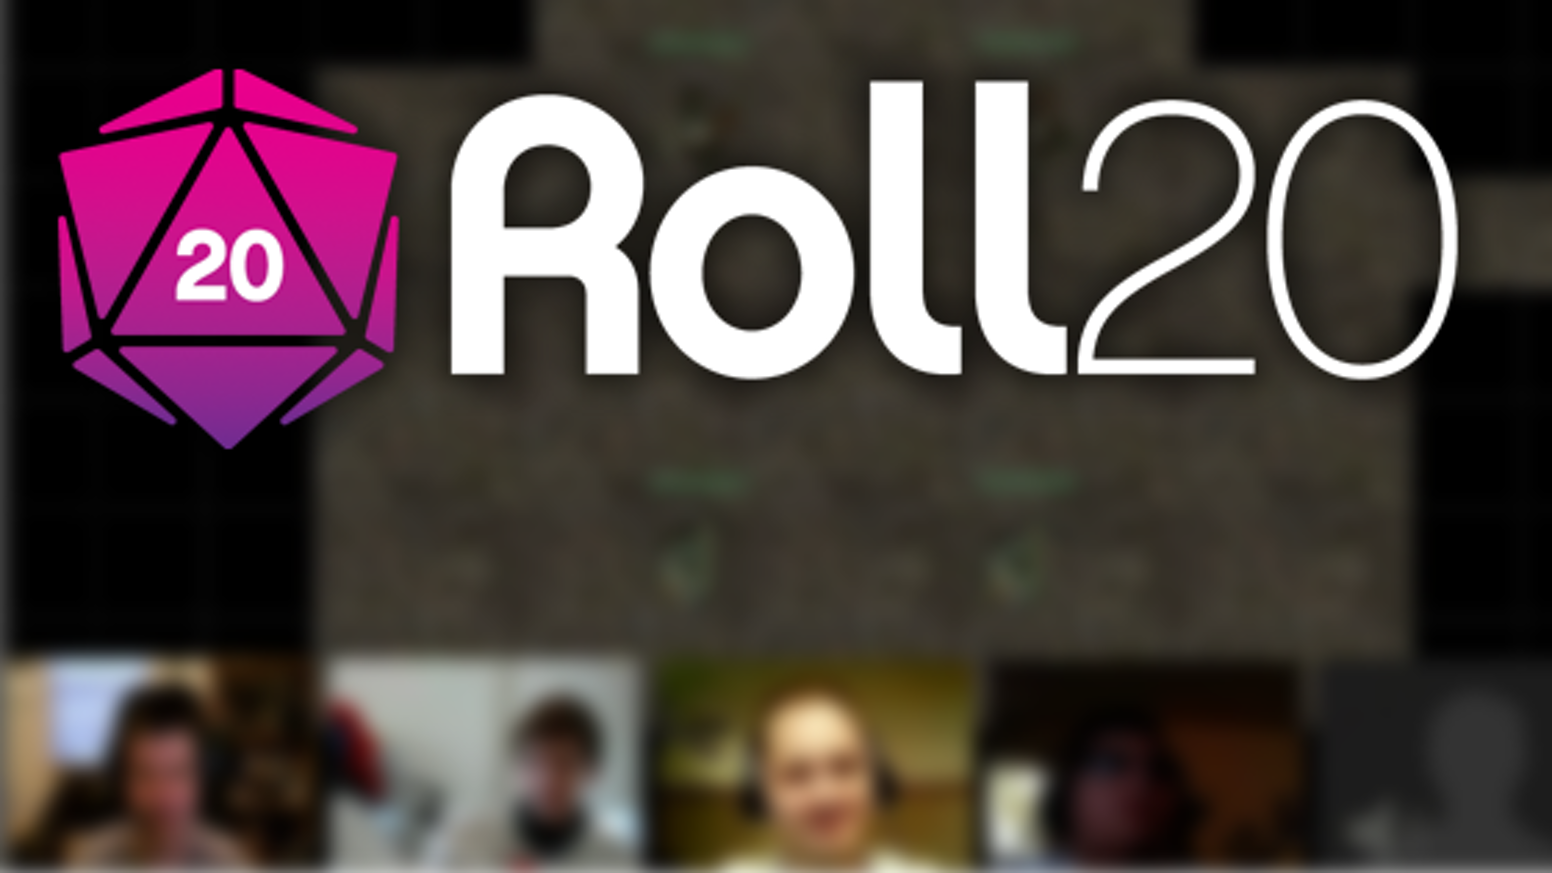 Nimble & flexible, Roll20 brings the best of tabletop gaming online, focusing on storytelling & camaraderie, not rulesets or mechanics.